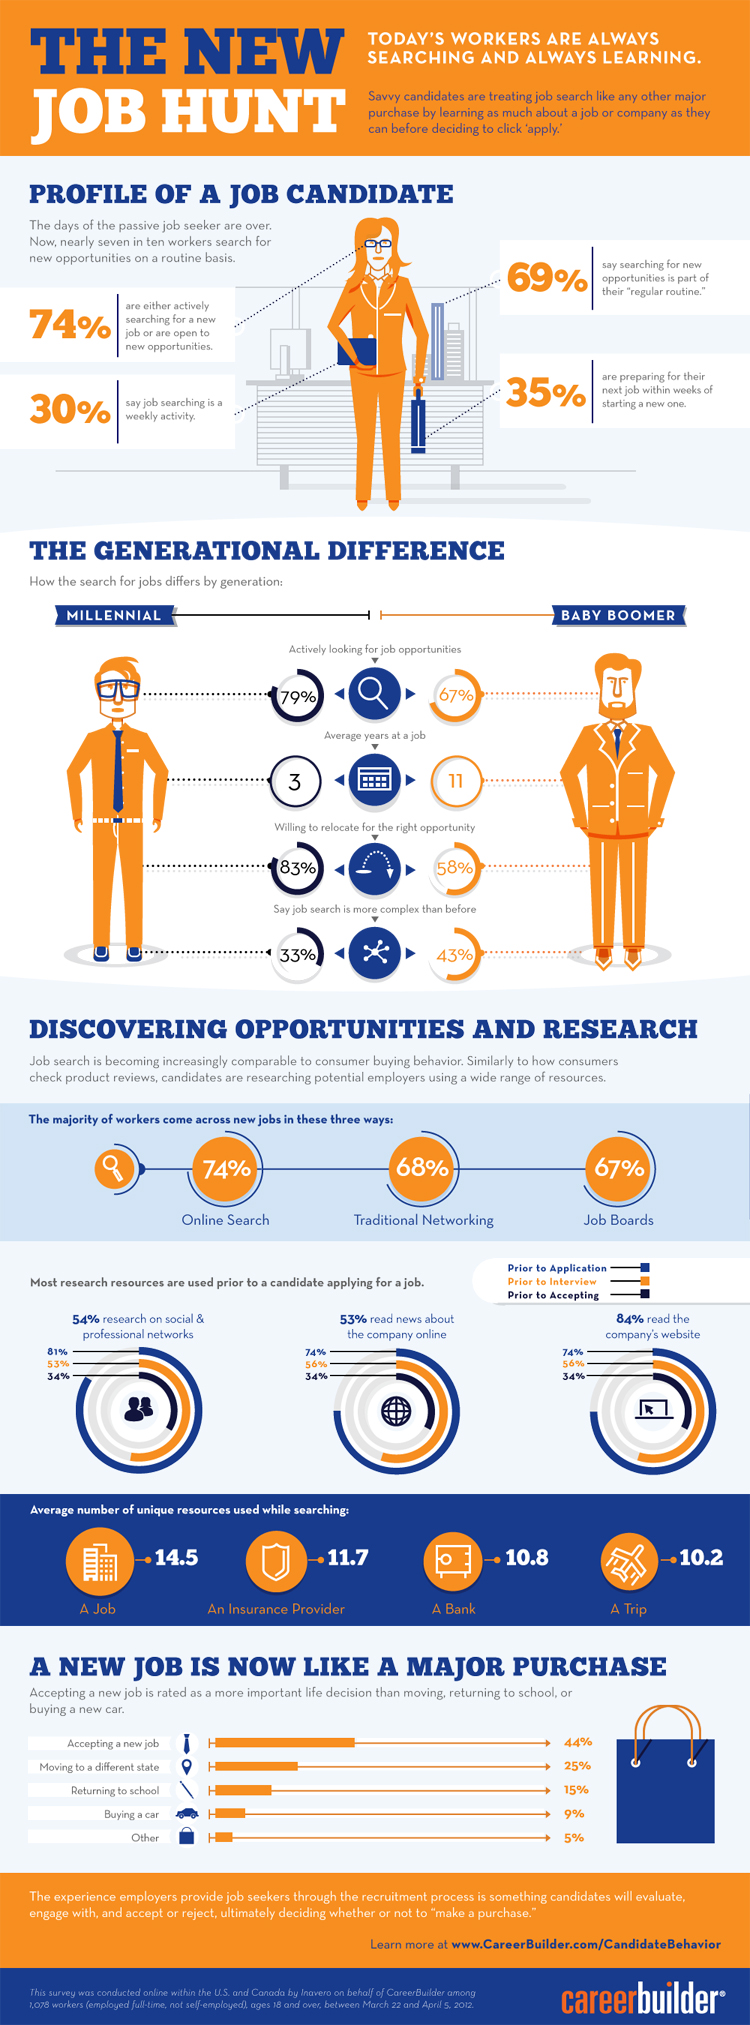 2012 study the new job hunt